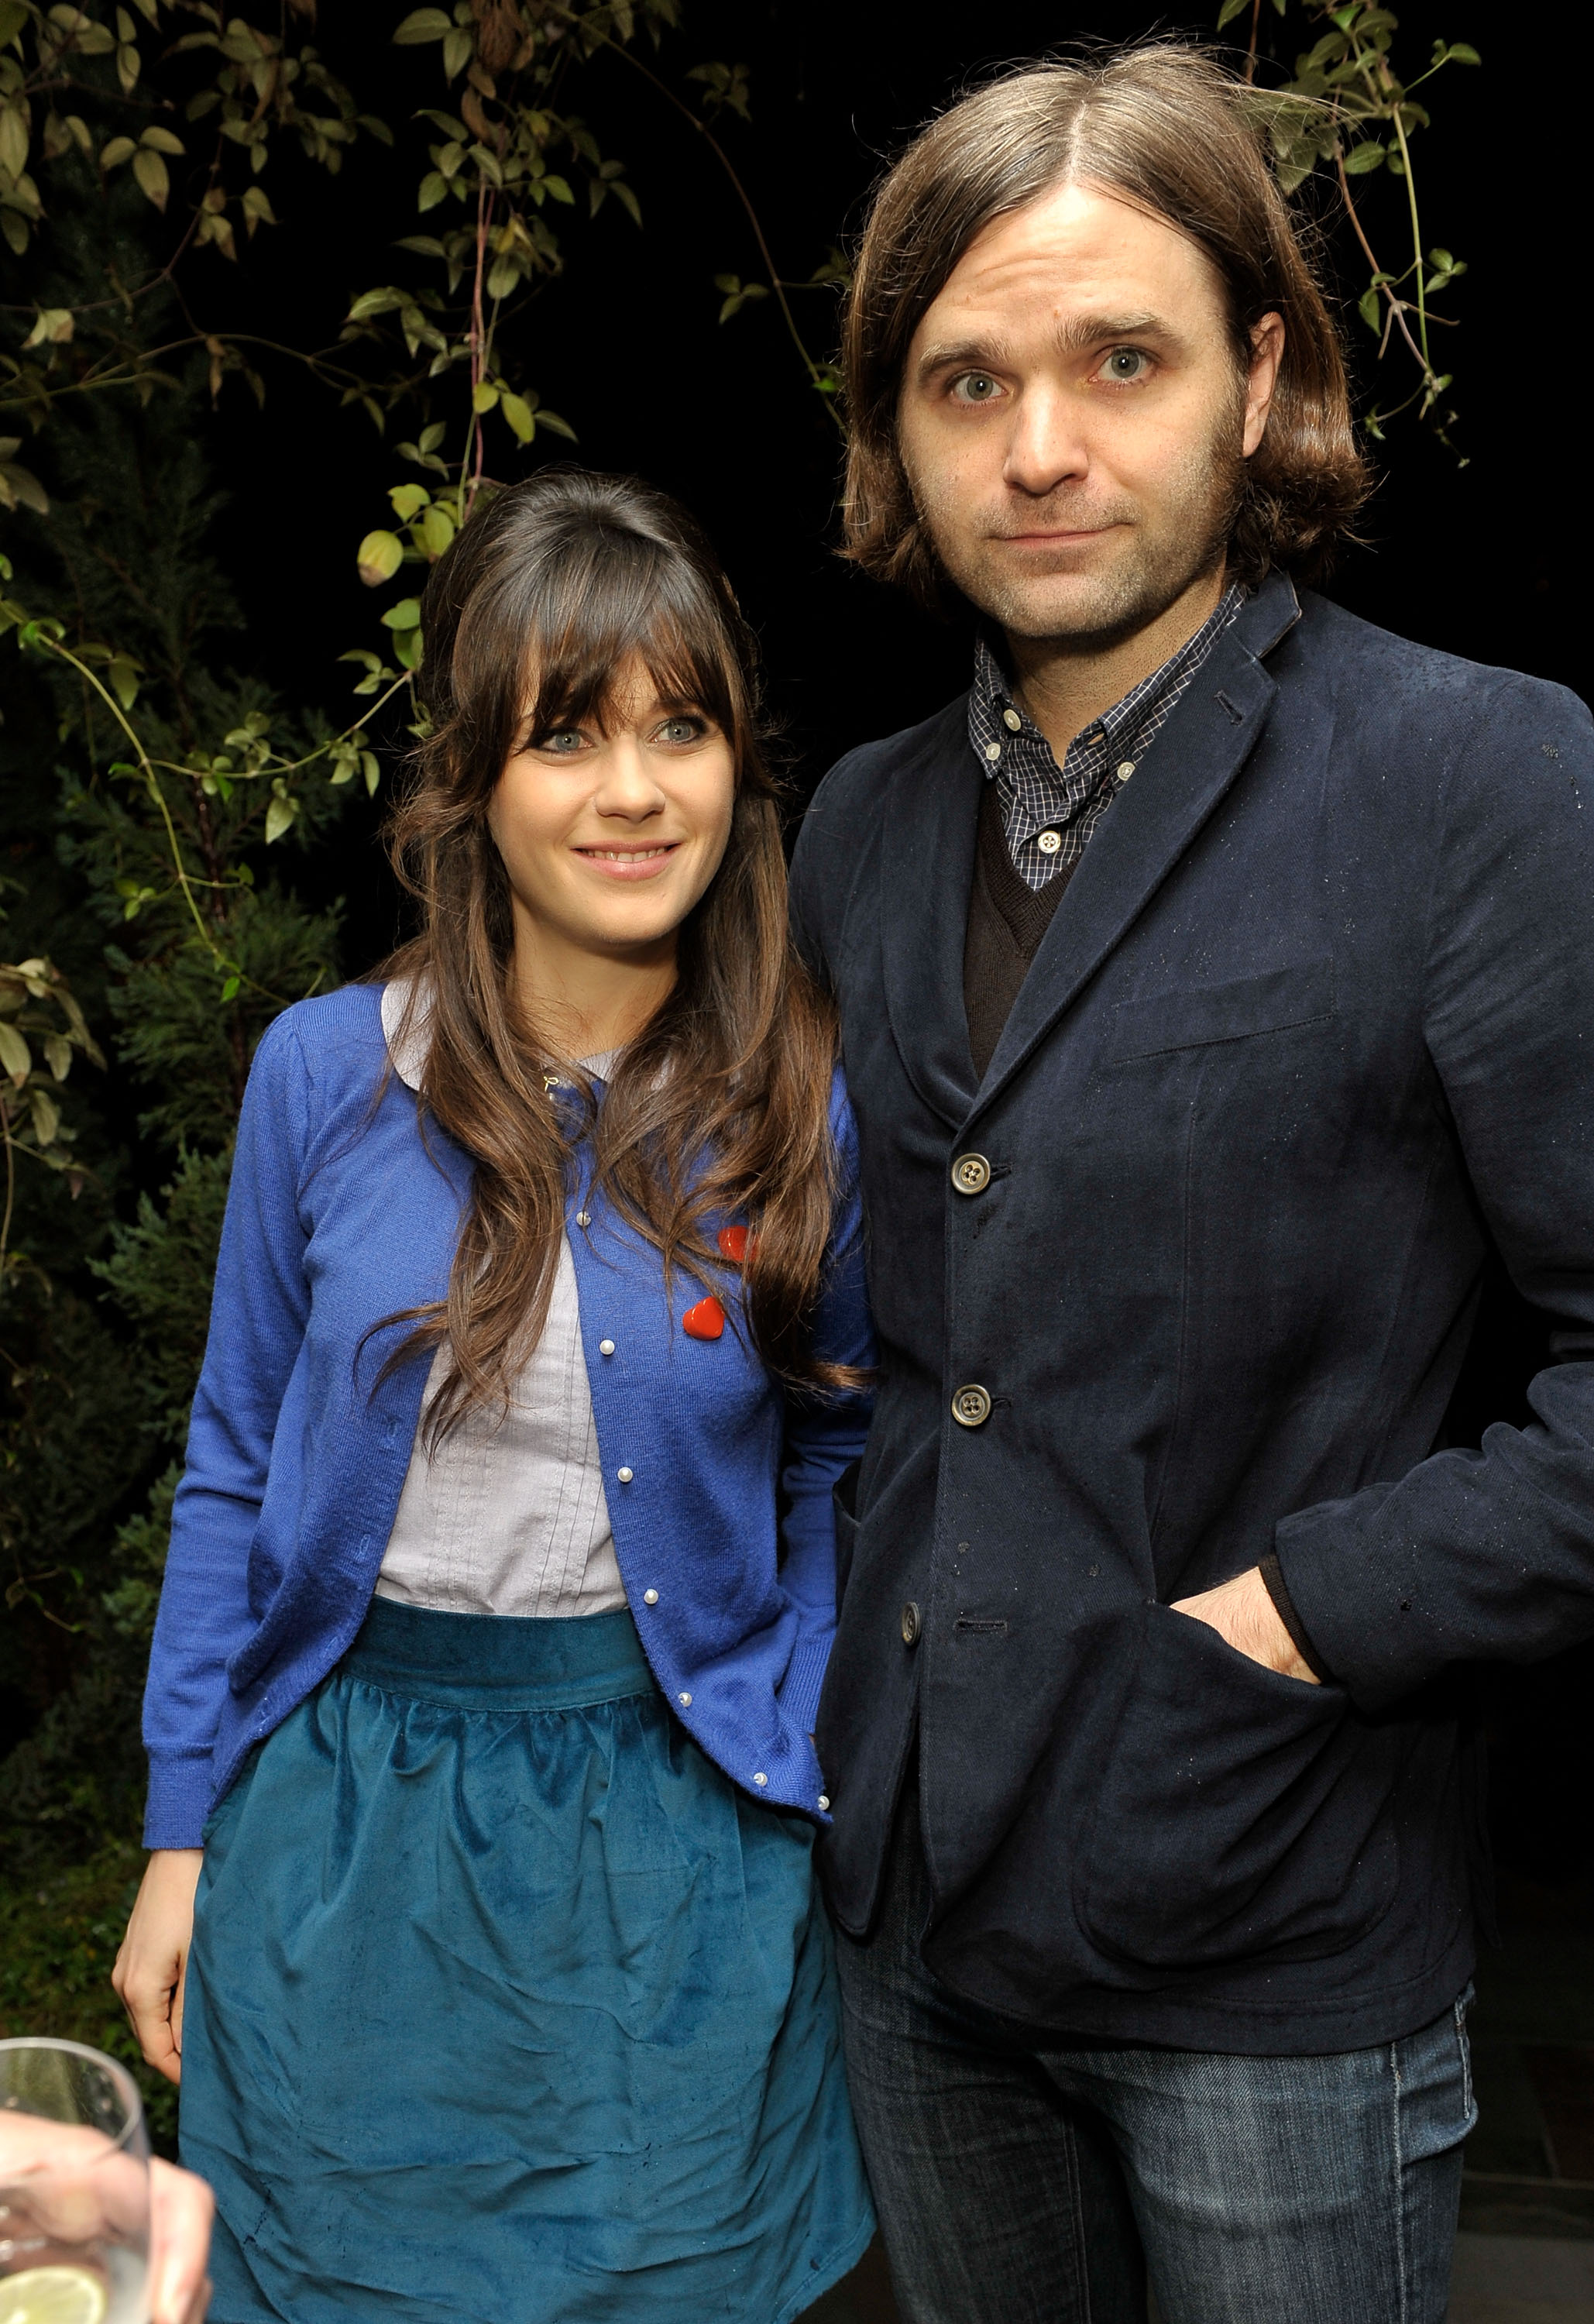 Zooey Deschanel and Ben Gibbard on December 12, 2009 in Los Angeles, California.